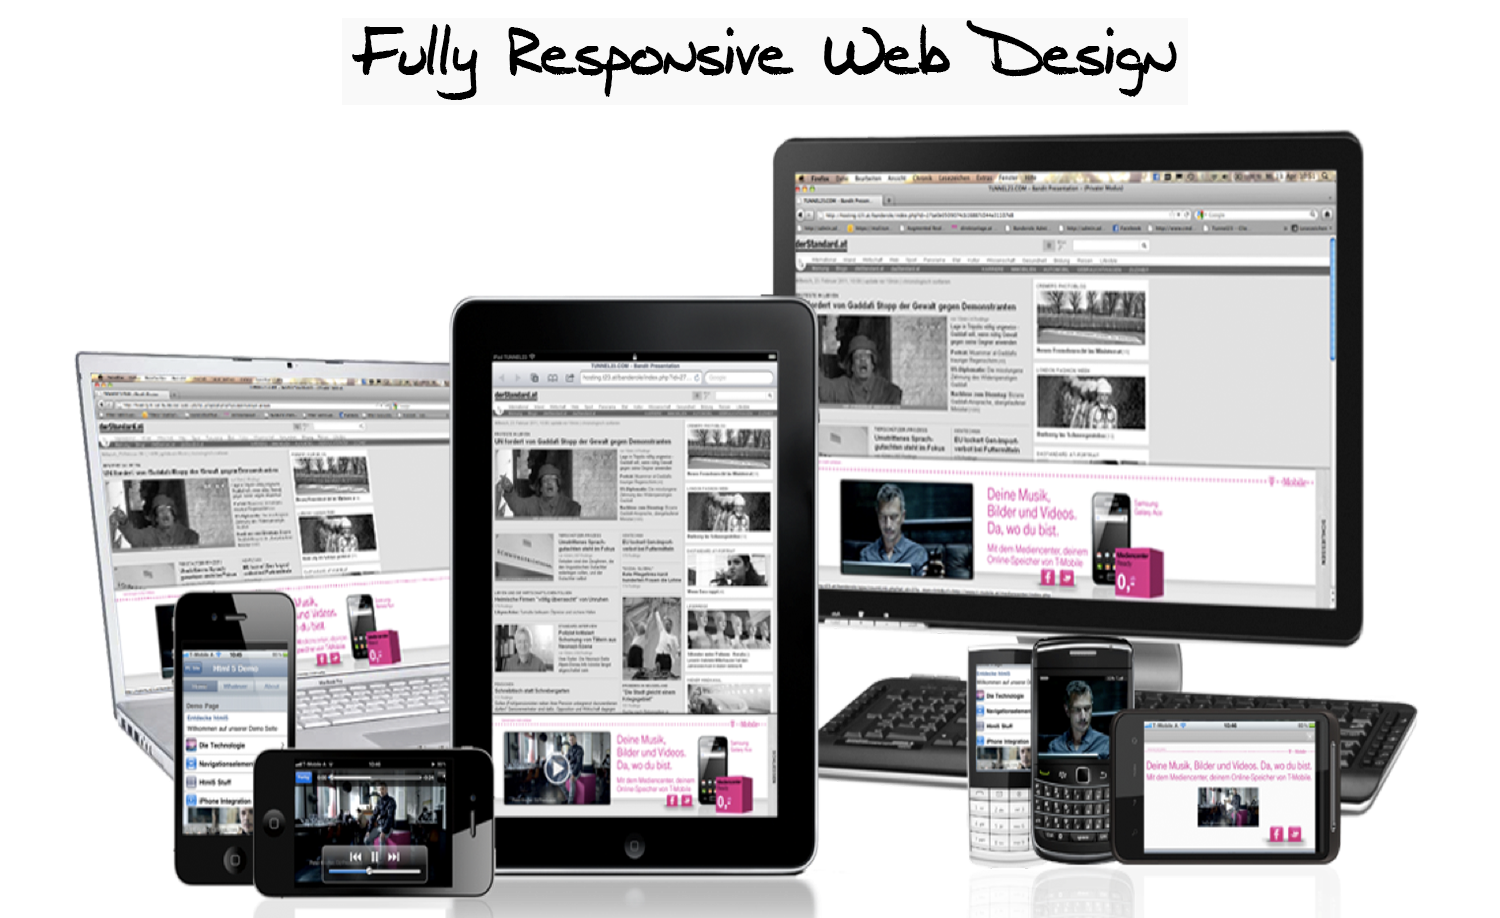 how to make the web page responsive